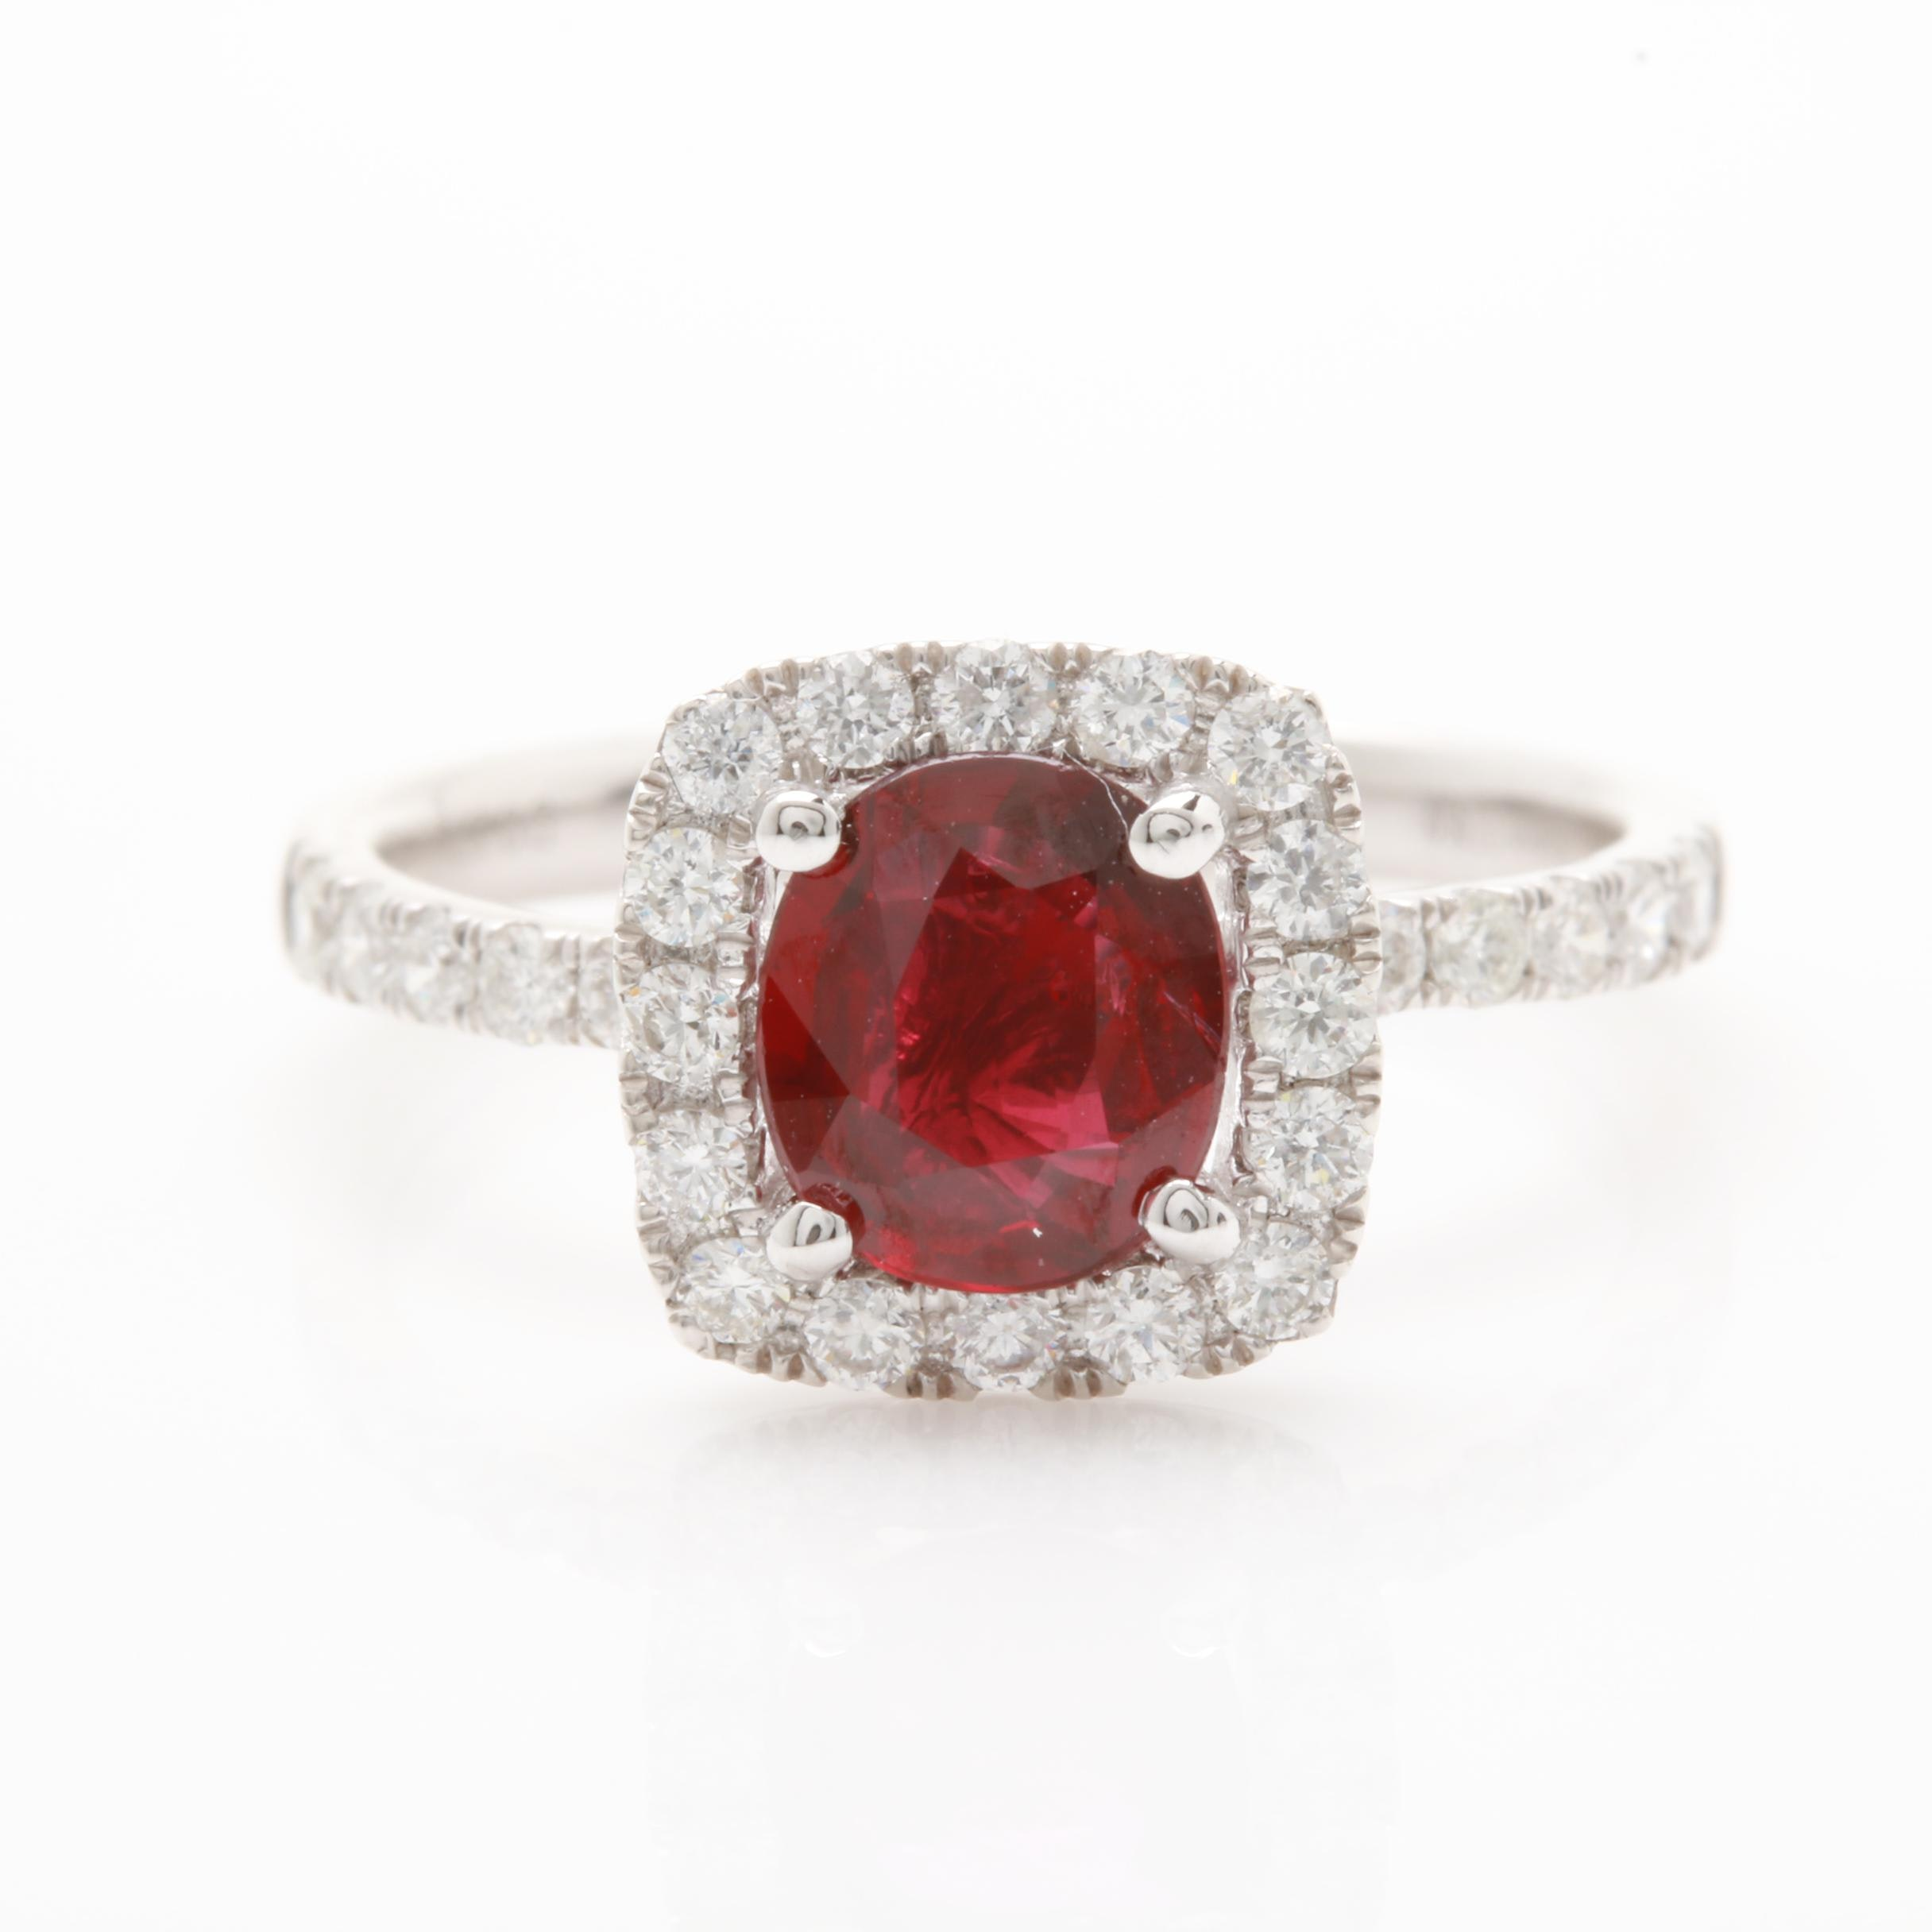 Platinum Untreated 1.23 CT Ruby and Diamond Ring with GIA Report